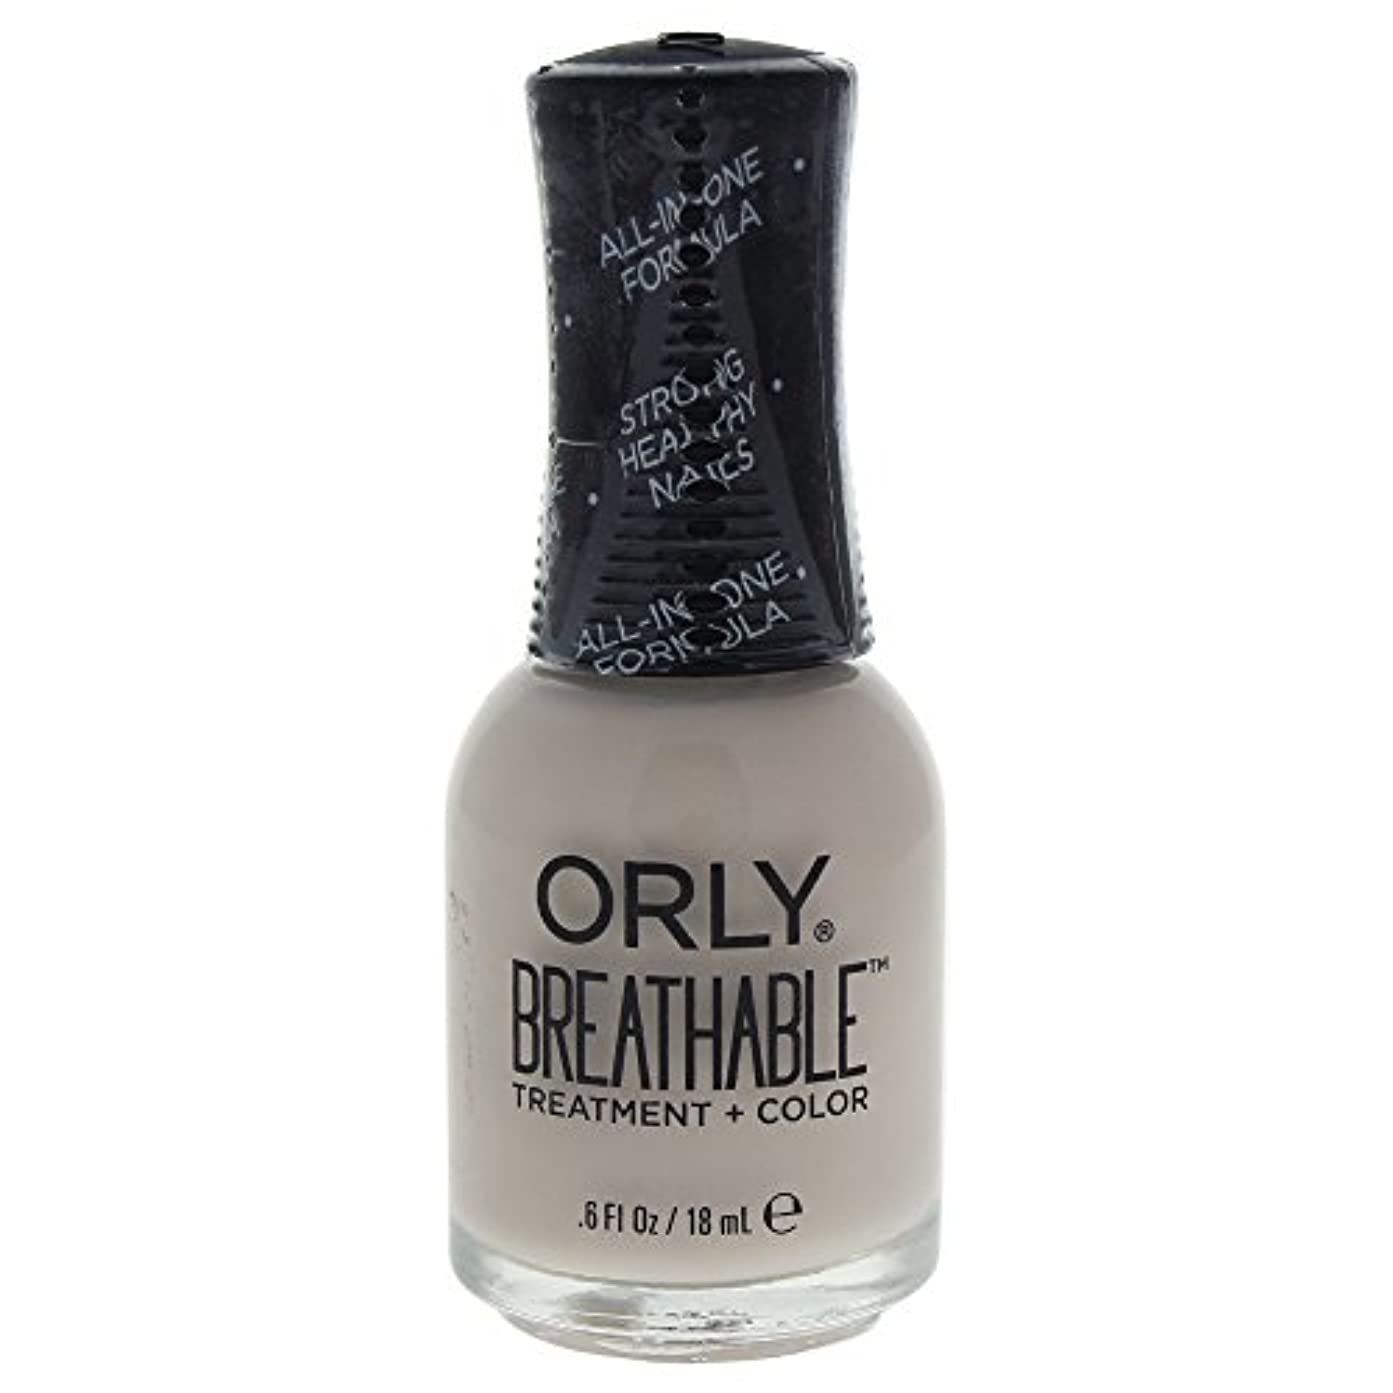 Orly Breathable Treatment + Color Nail Lacquer - Almond Milk - 0.6oz / 18ml